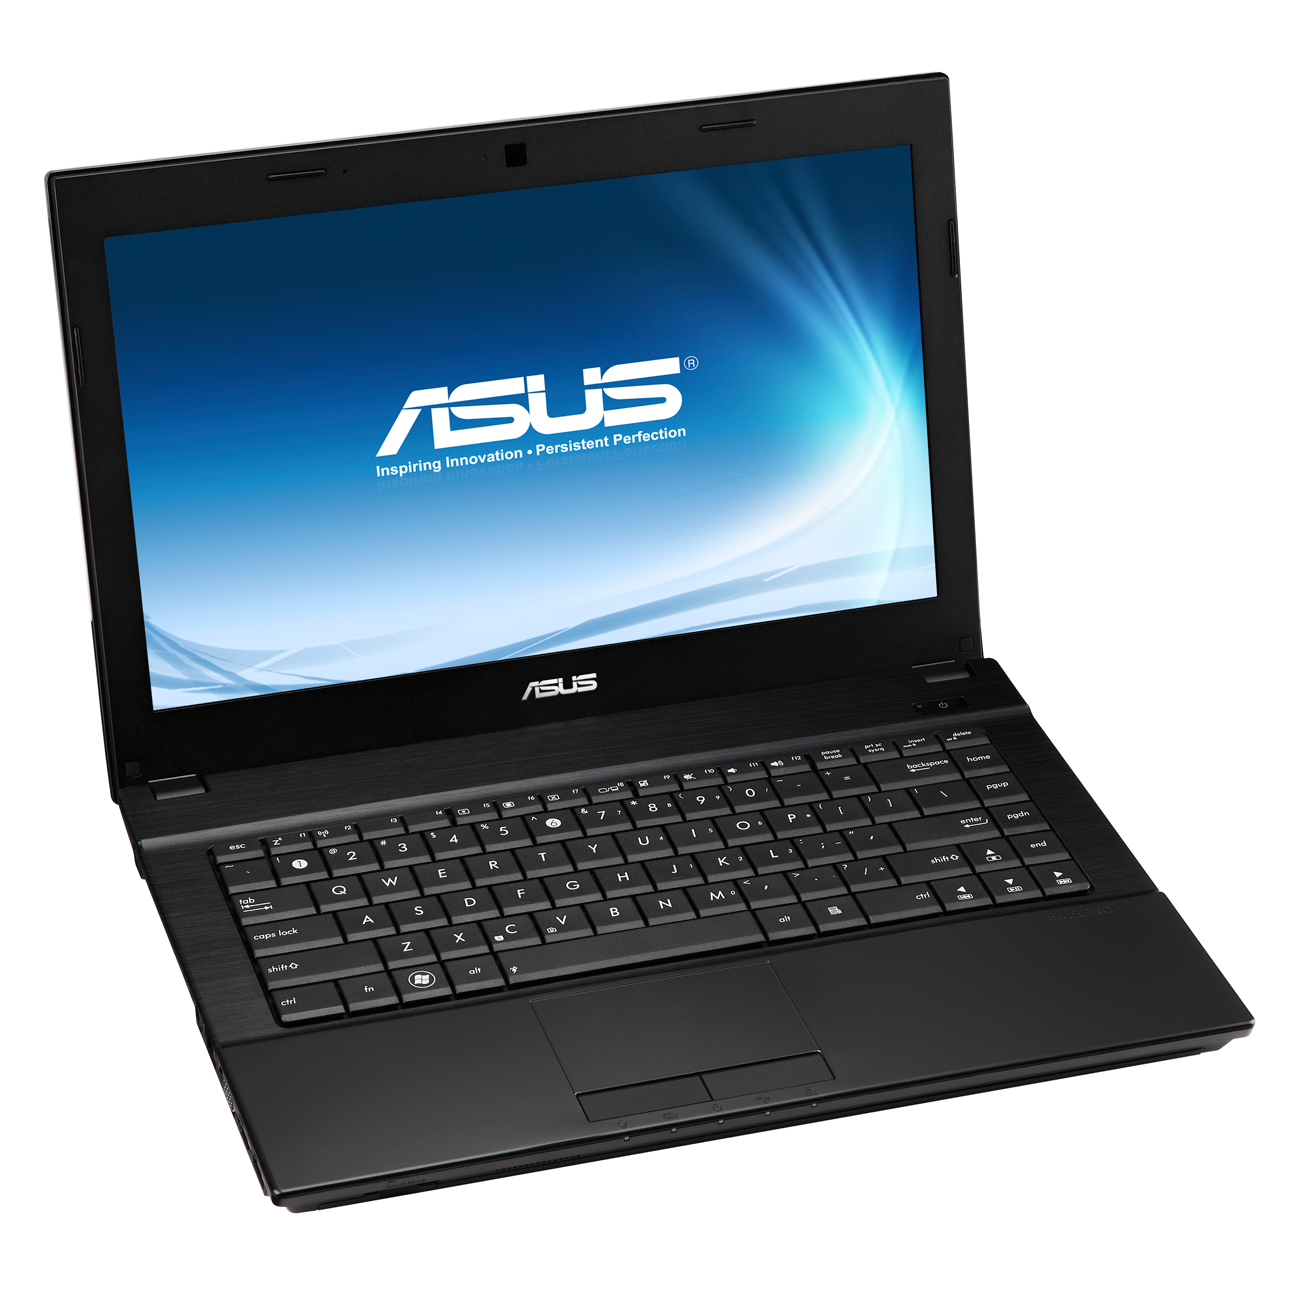 asus p43e vo101x pc portable asus sur. Black Bedroom Furniture Sets. Home Design Ideas